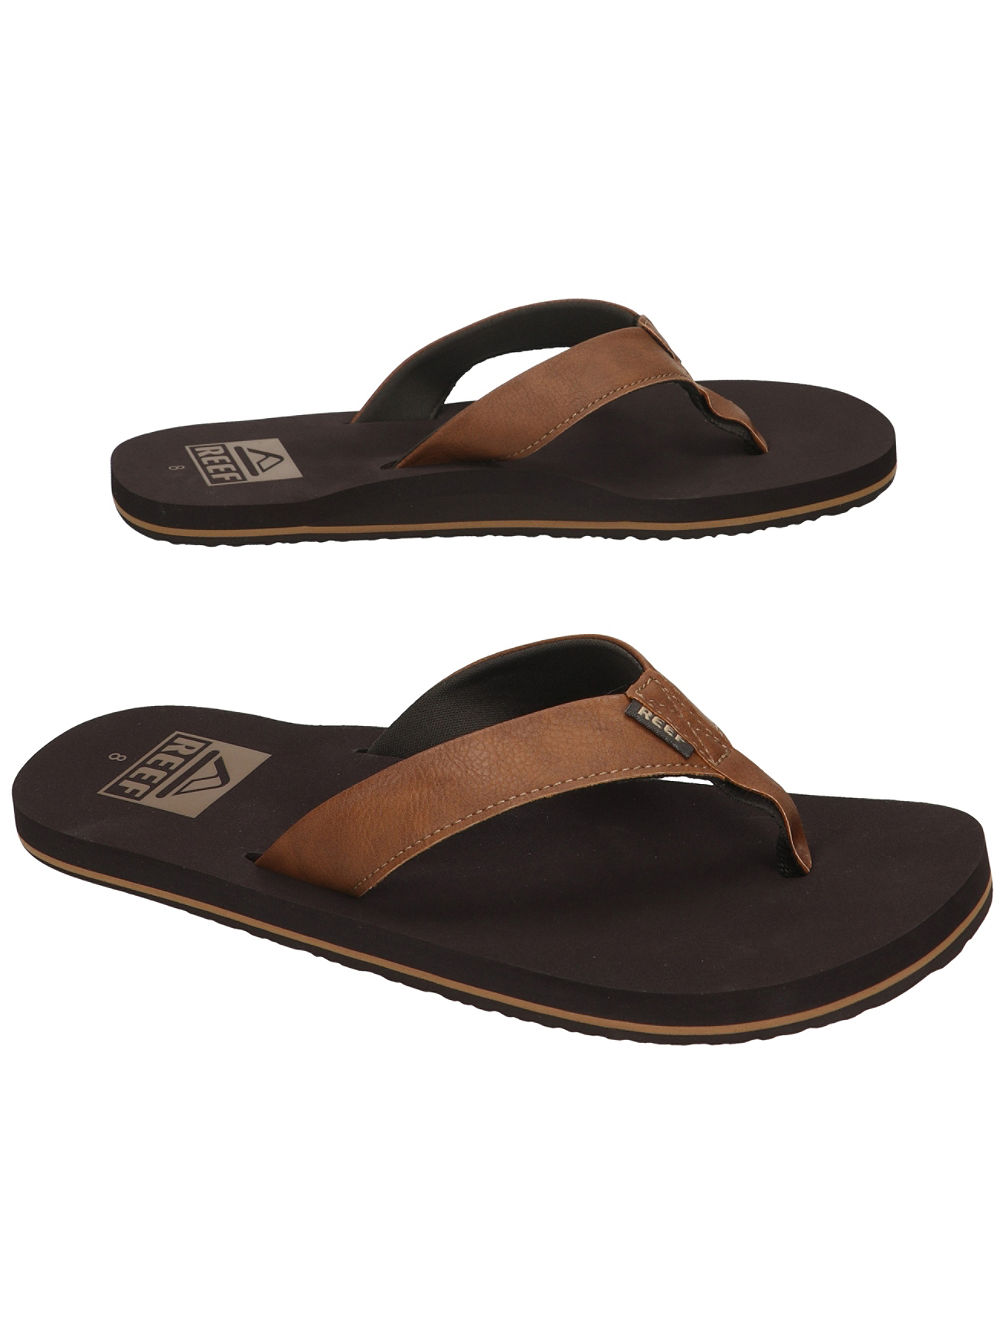 90d8beded6ac Buy Reef Twinpin Sandals online at blue-tomato.com